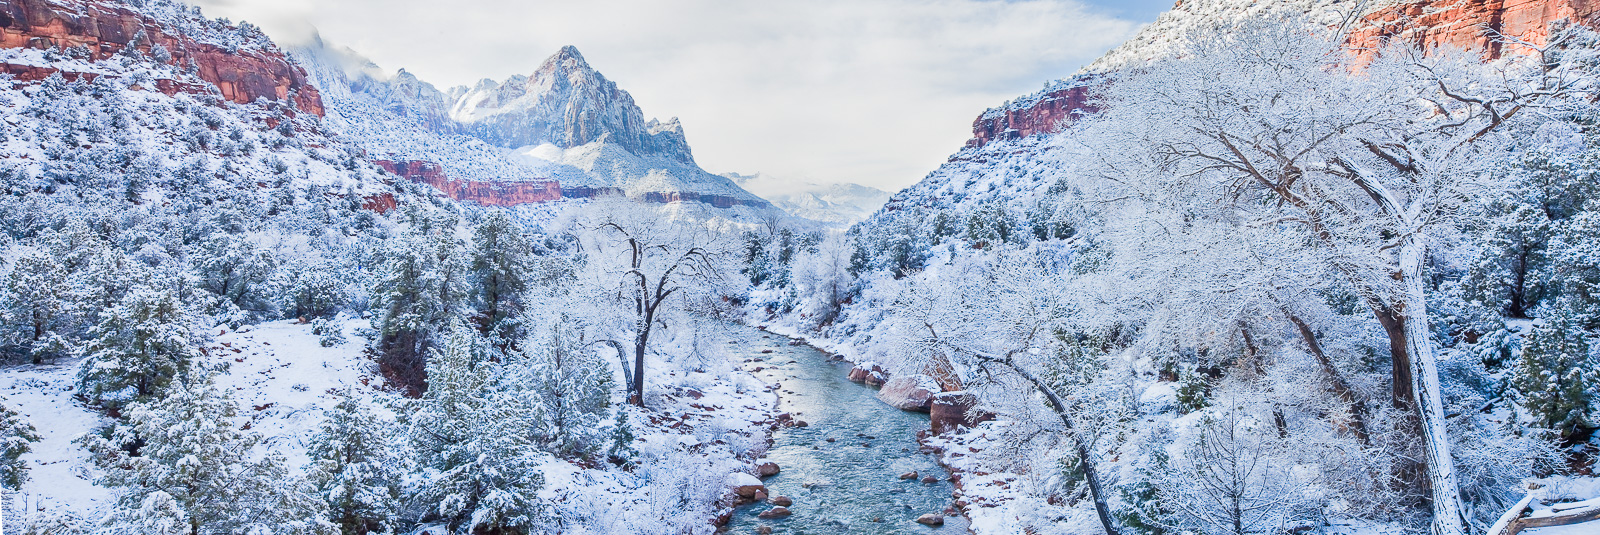 Snowclad Zion,Panoramic,Utah,Winter,Zion National Park,Snowclad,horizontal,snow,desert,climate,Gray,desert,climate, photo